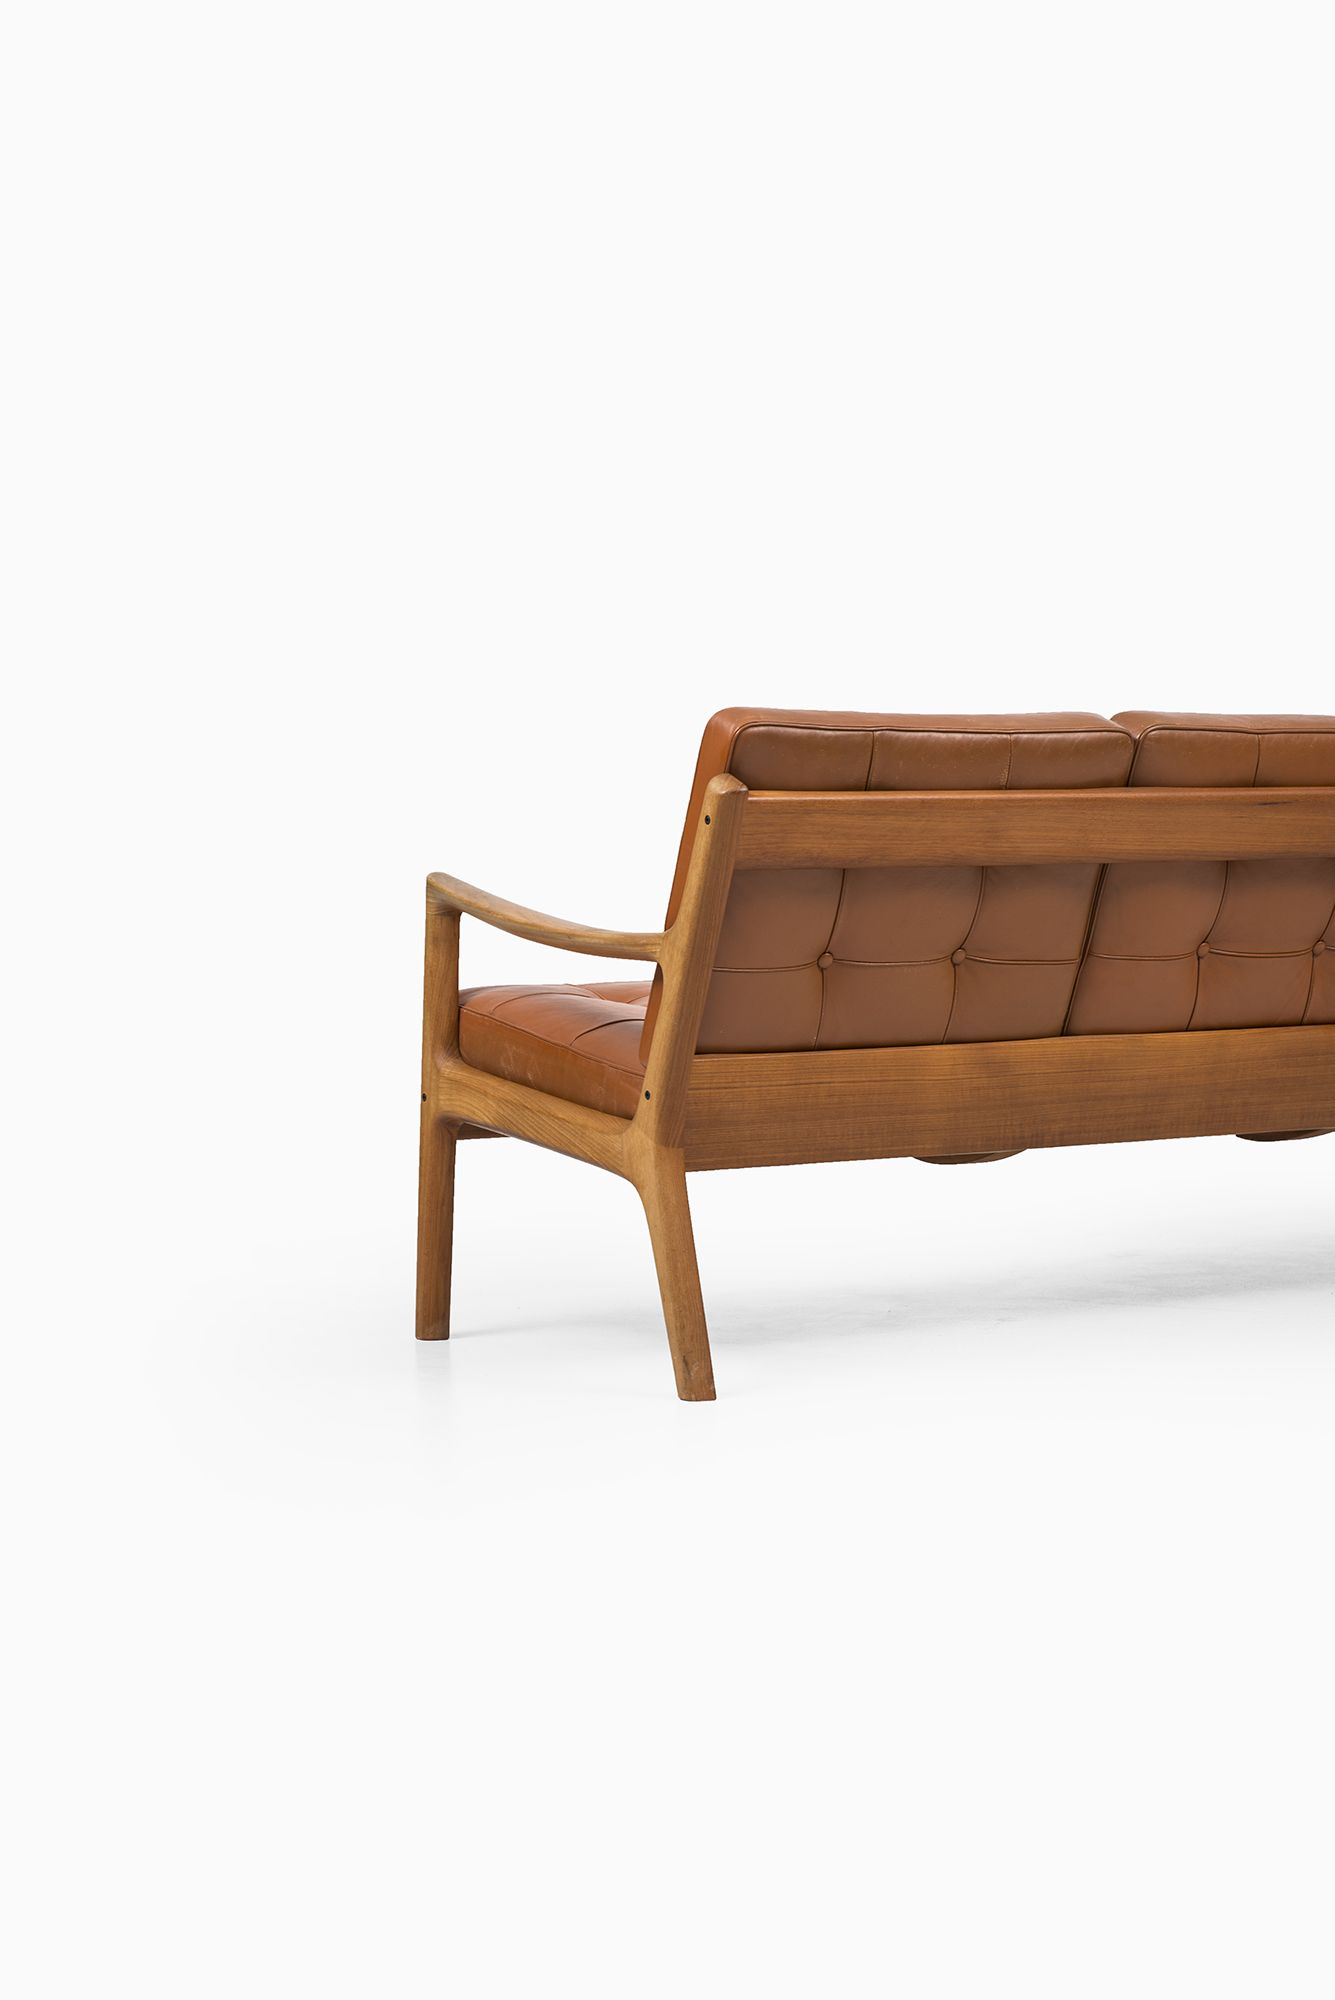 Ole Wanscher Senator sofa by France & Son at Studio Schalling